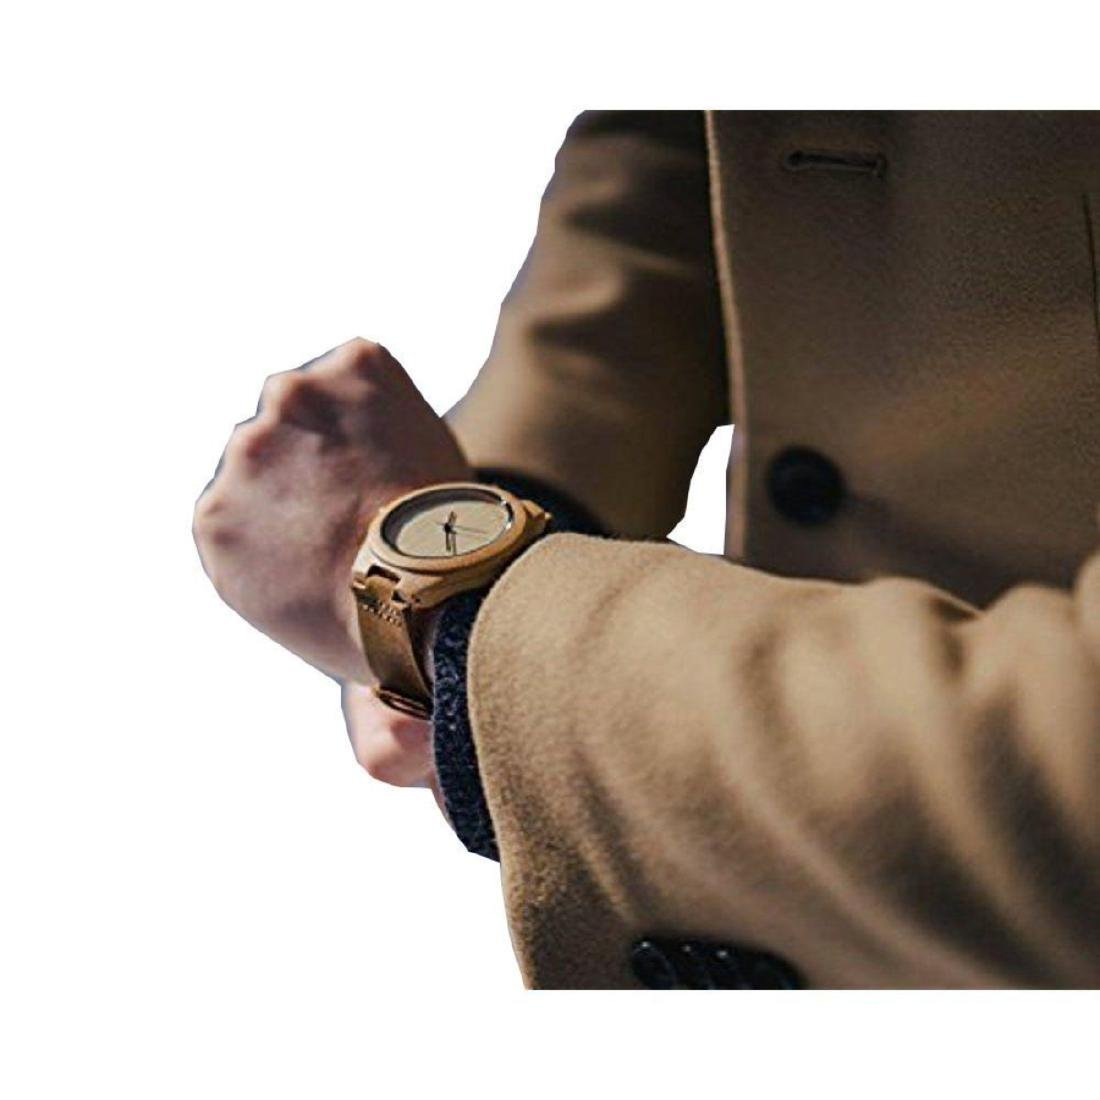 Cucol Wrist Watches Men's Bamboo Wooden With Brown - 6